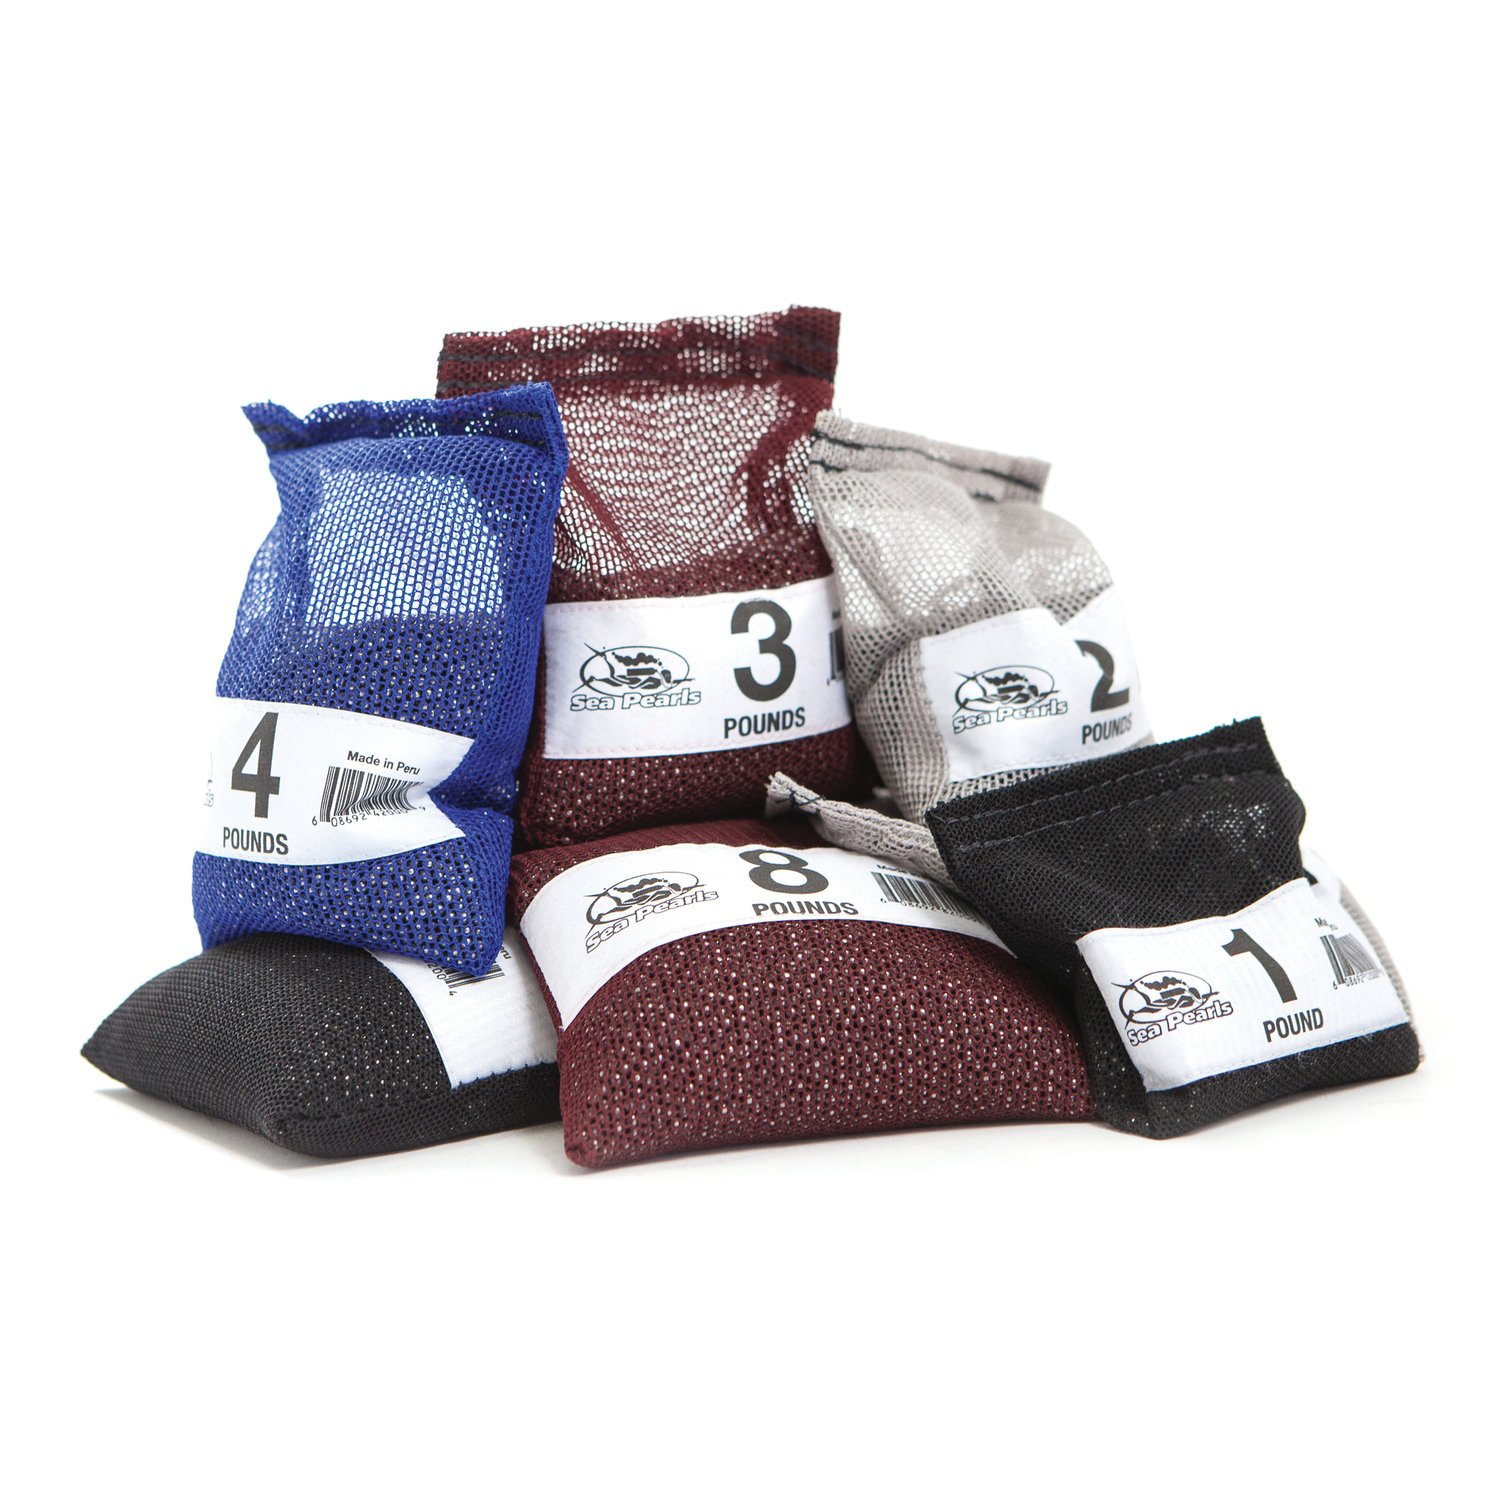 Lead Weights Soft Mesh Bag